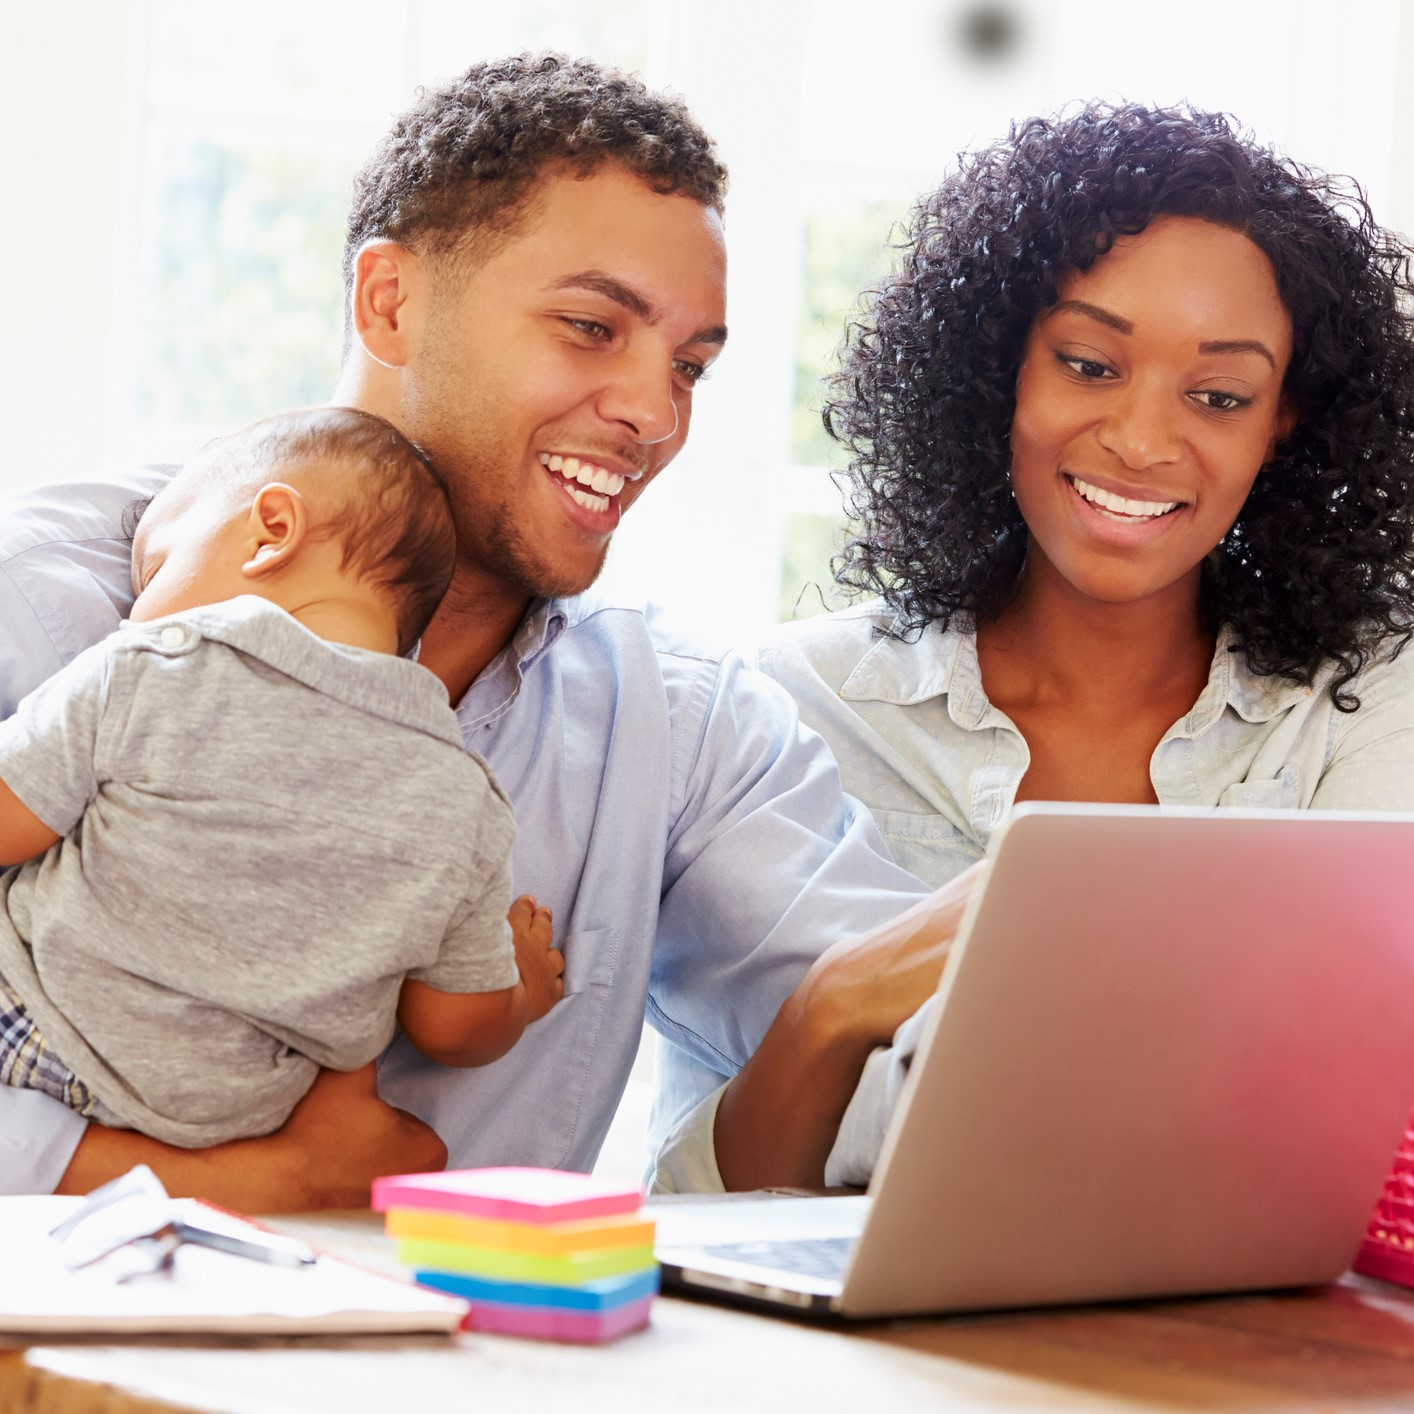 Parents on laptop while dad is holding baby